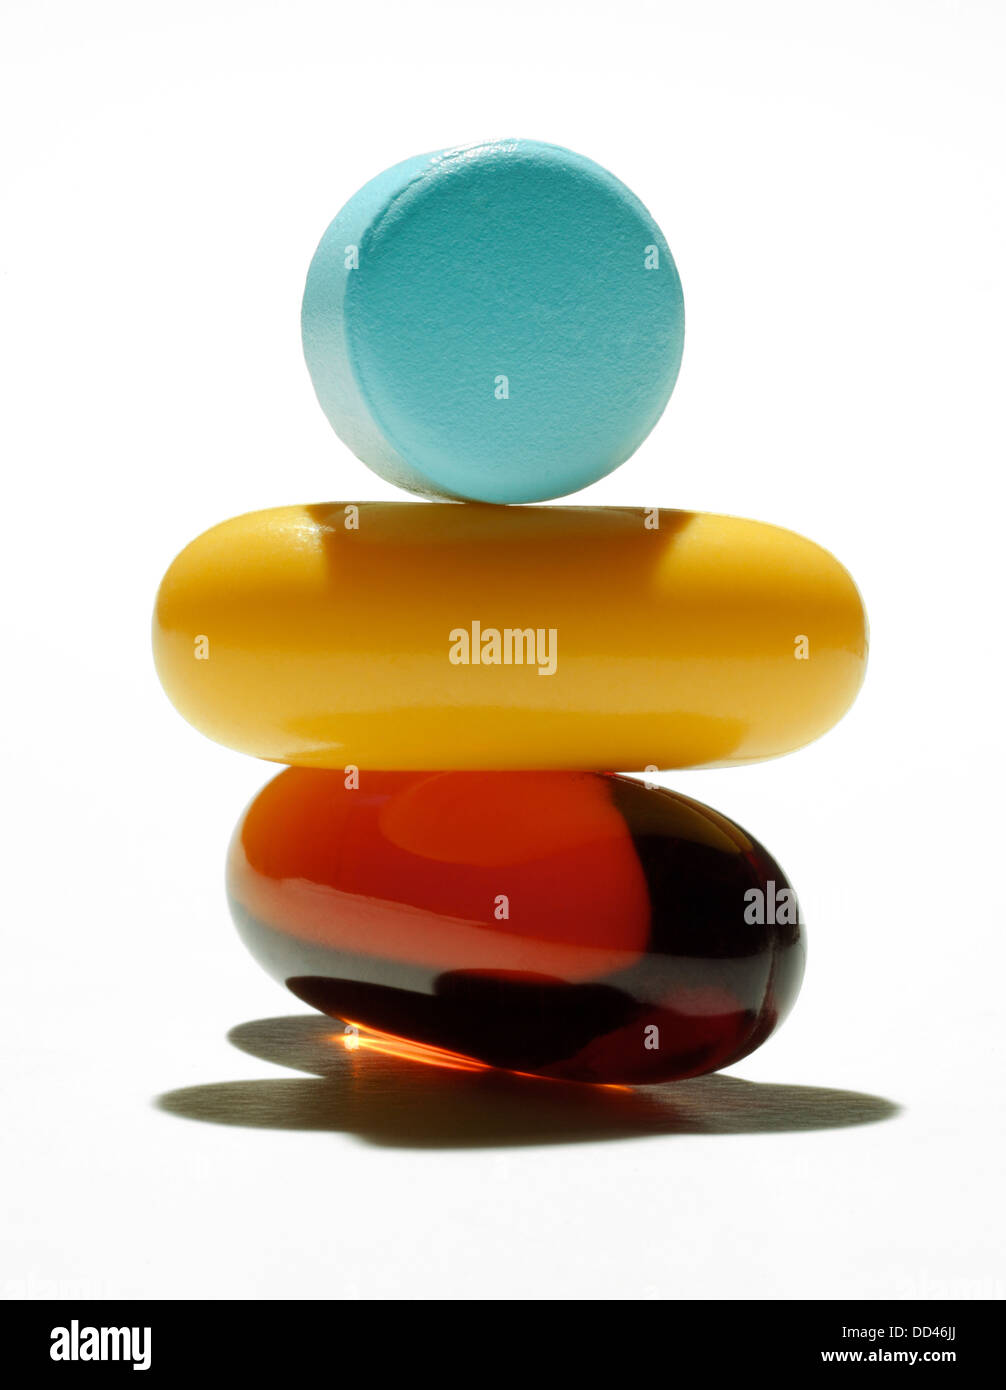 A balance stack of a vitamin capsule, pill and tablet. White background - Stock Image